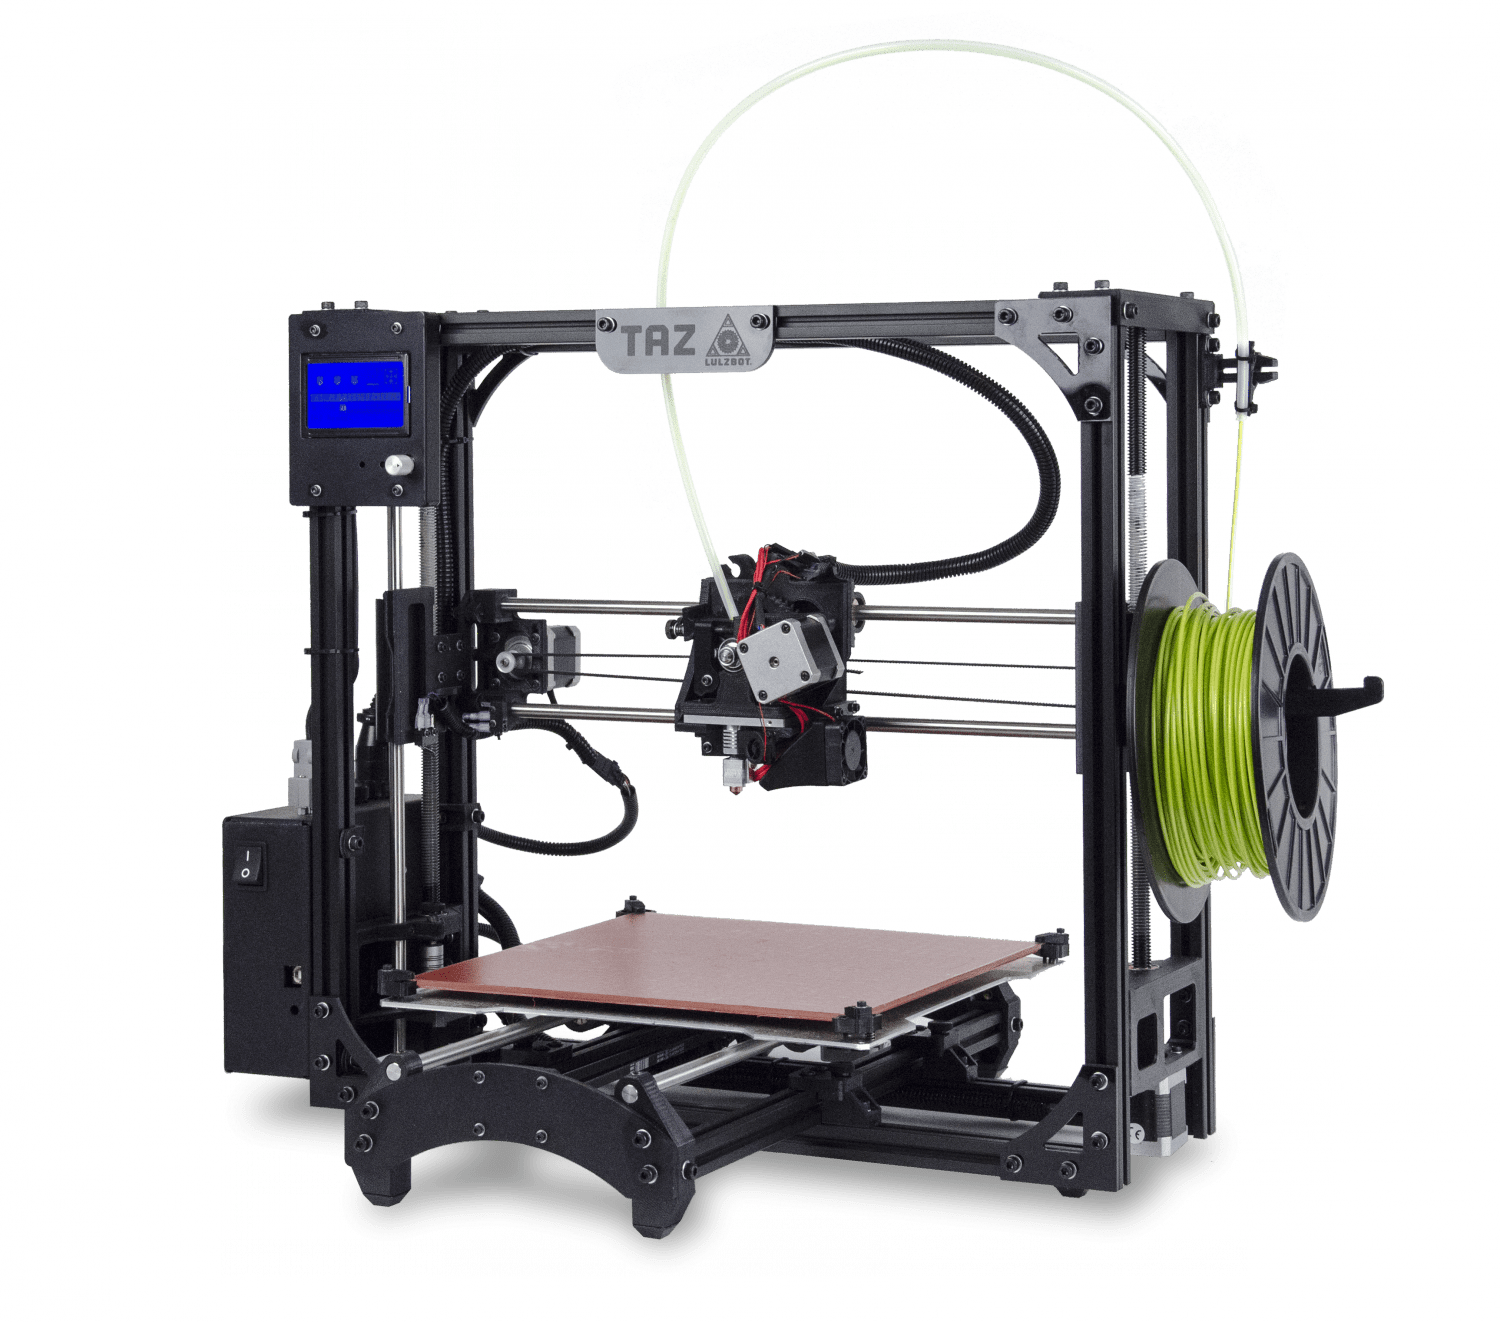 Lulzbot Skyrockets, Surprises With Early Taz 5 Release